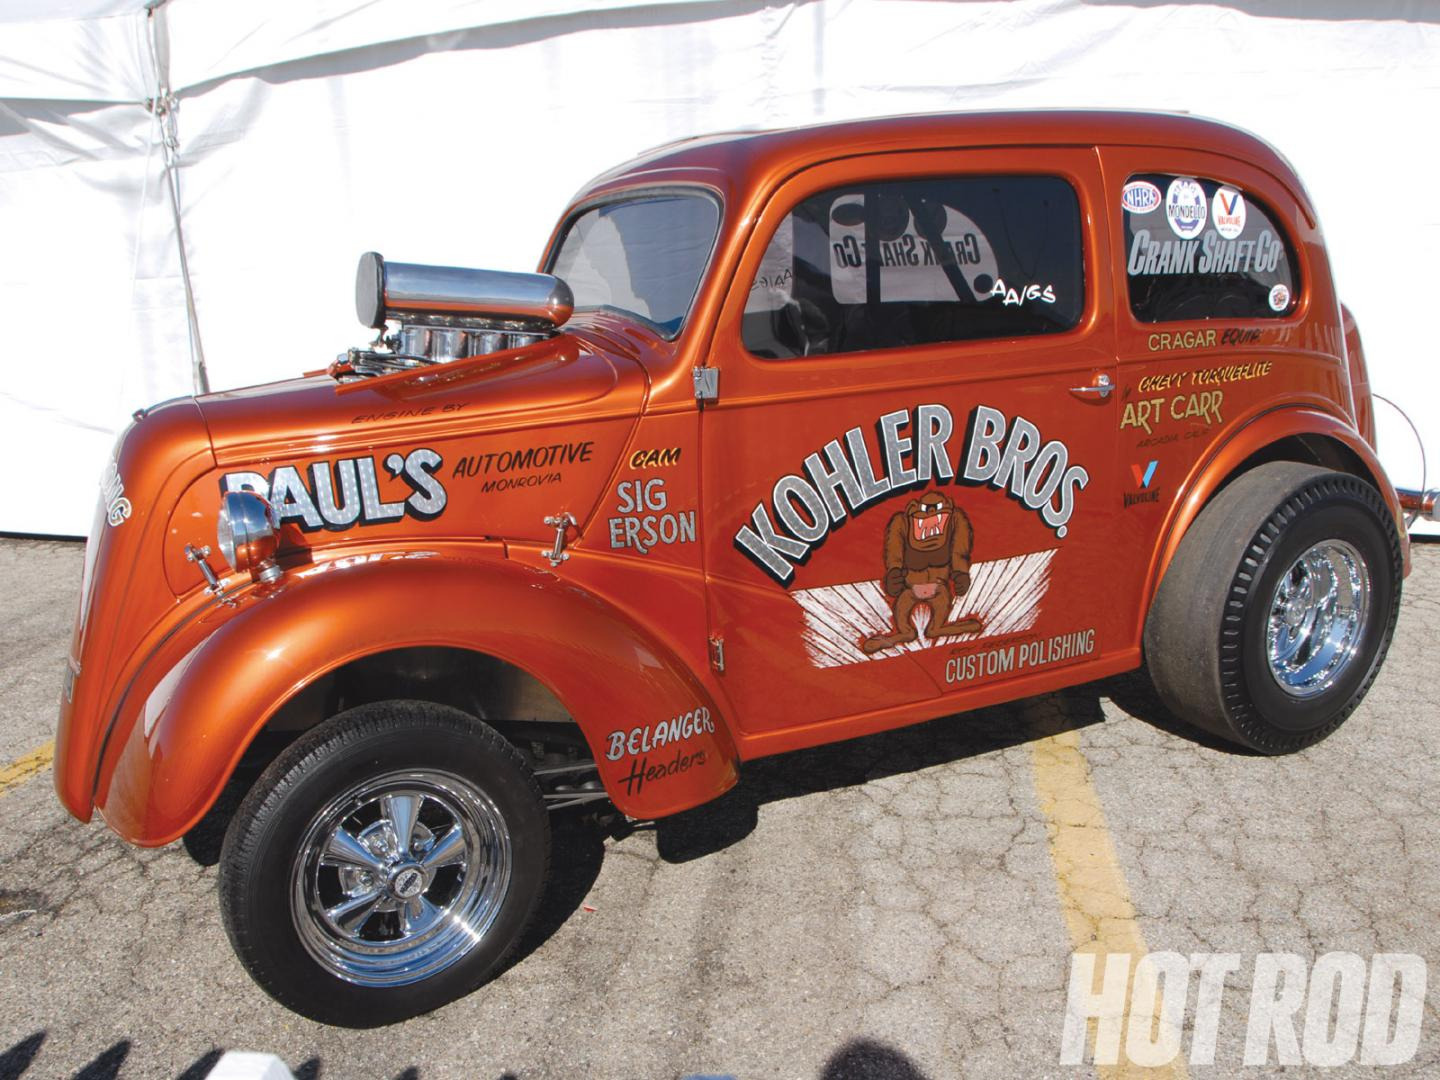 hrdp_1006_17_o+29_drag_cars_from_the_50th_winternationals+kohler_brothers_anglia_gasser_today.jpg